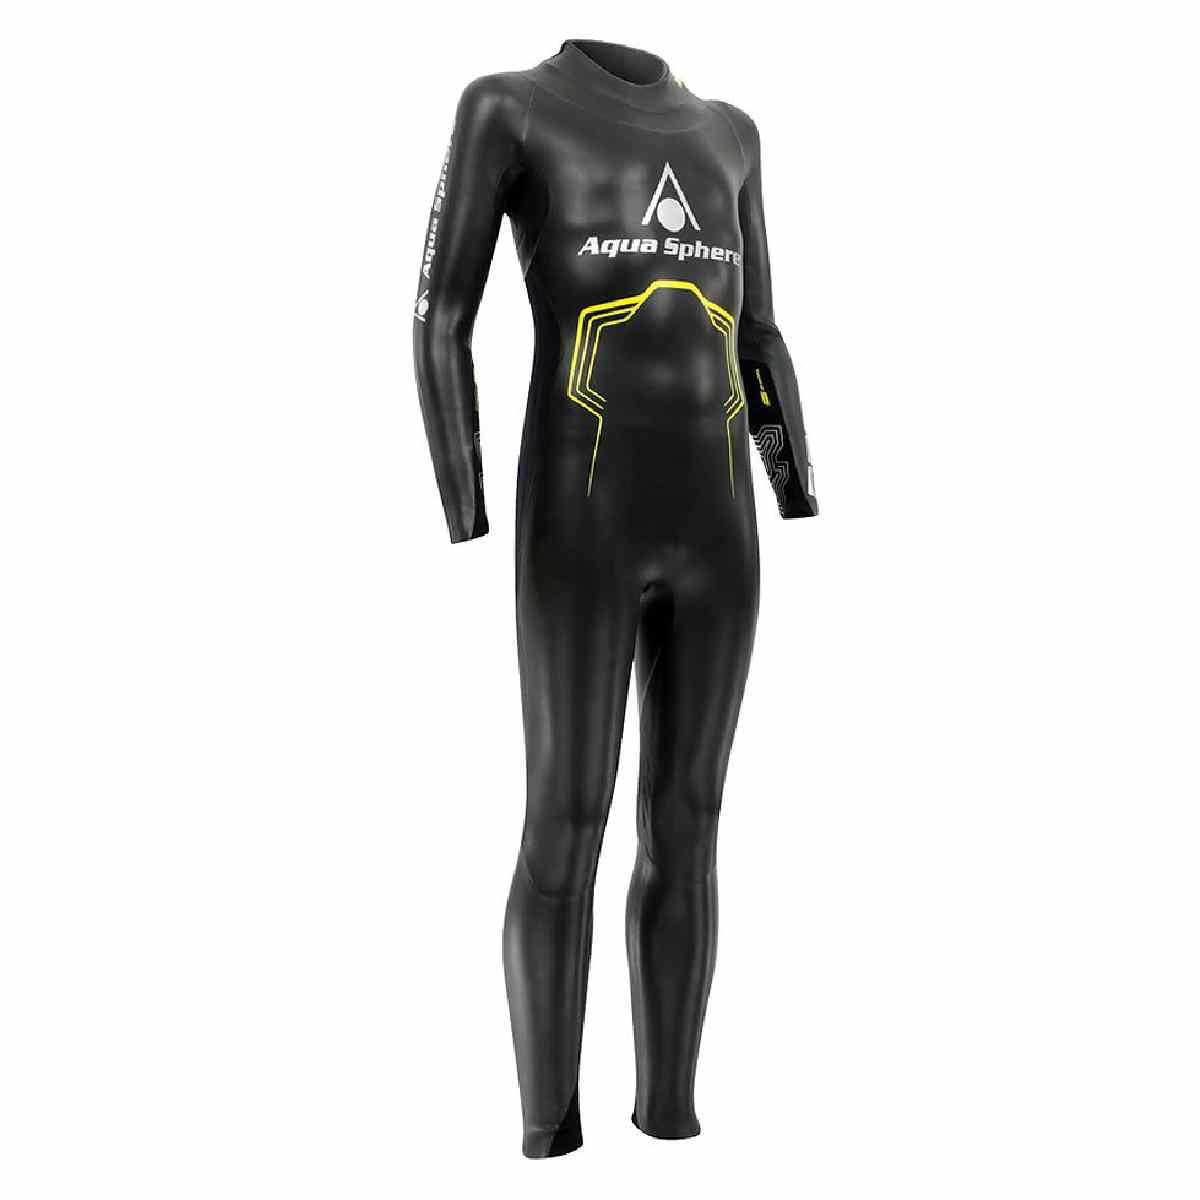 COMBINAISON ISOTHERMIQUE (WETSUIT) AQUA SPHERE RAGE YOUTH COMPETITOR